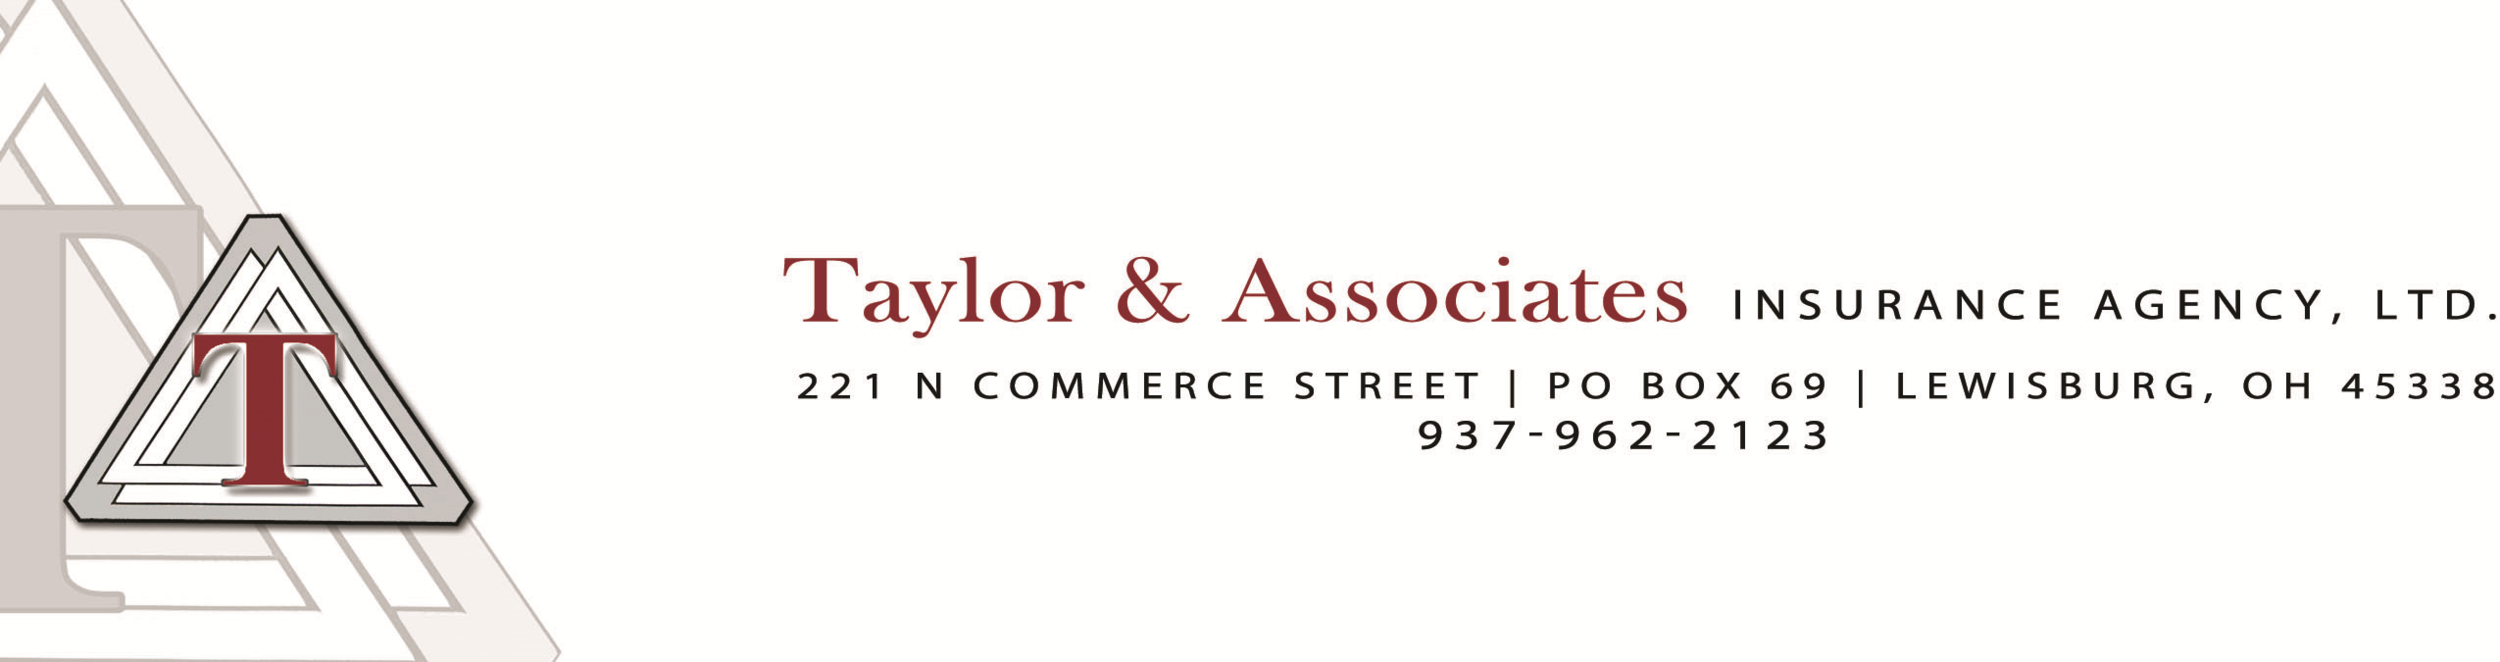 taylor  assoc  letterhead graphic (fixed).png